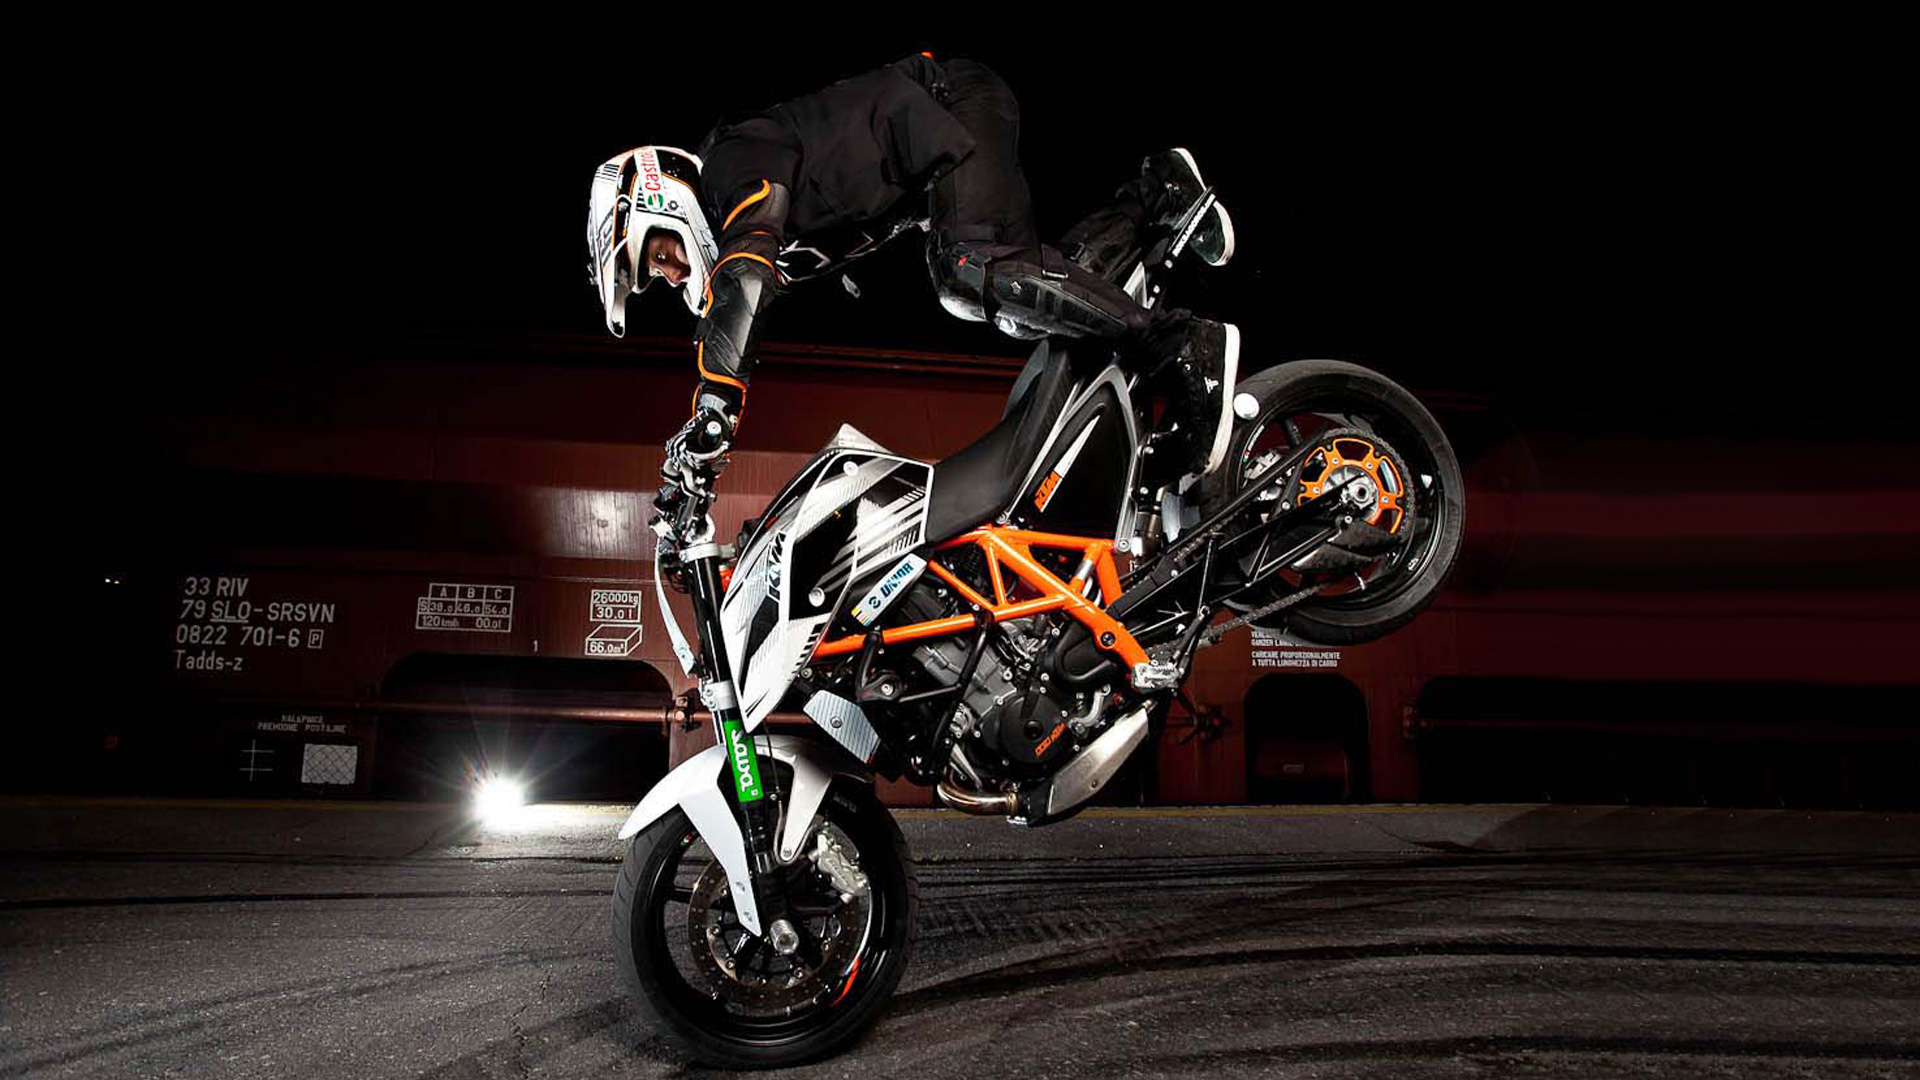 Bike Stunt Wallpaper HD